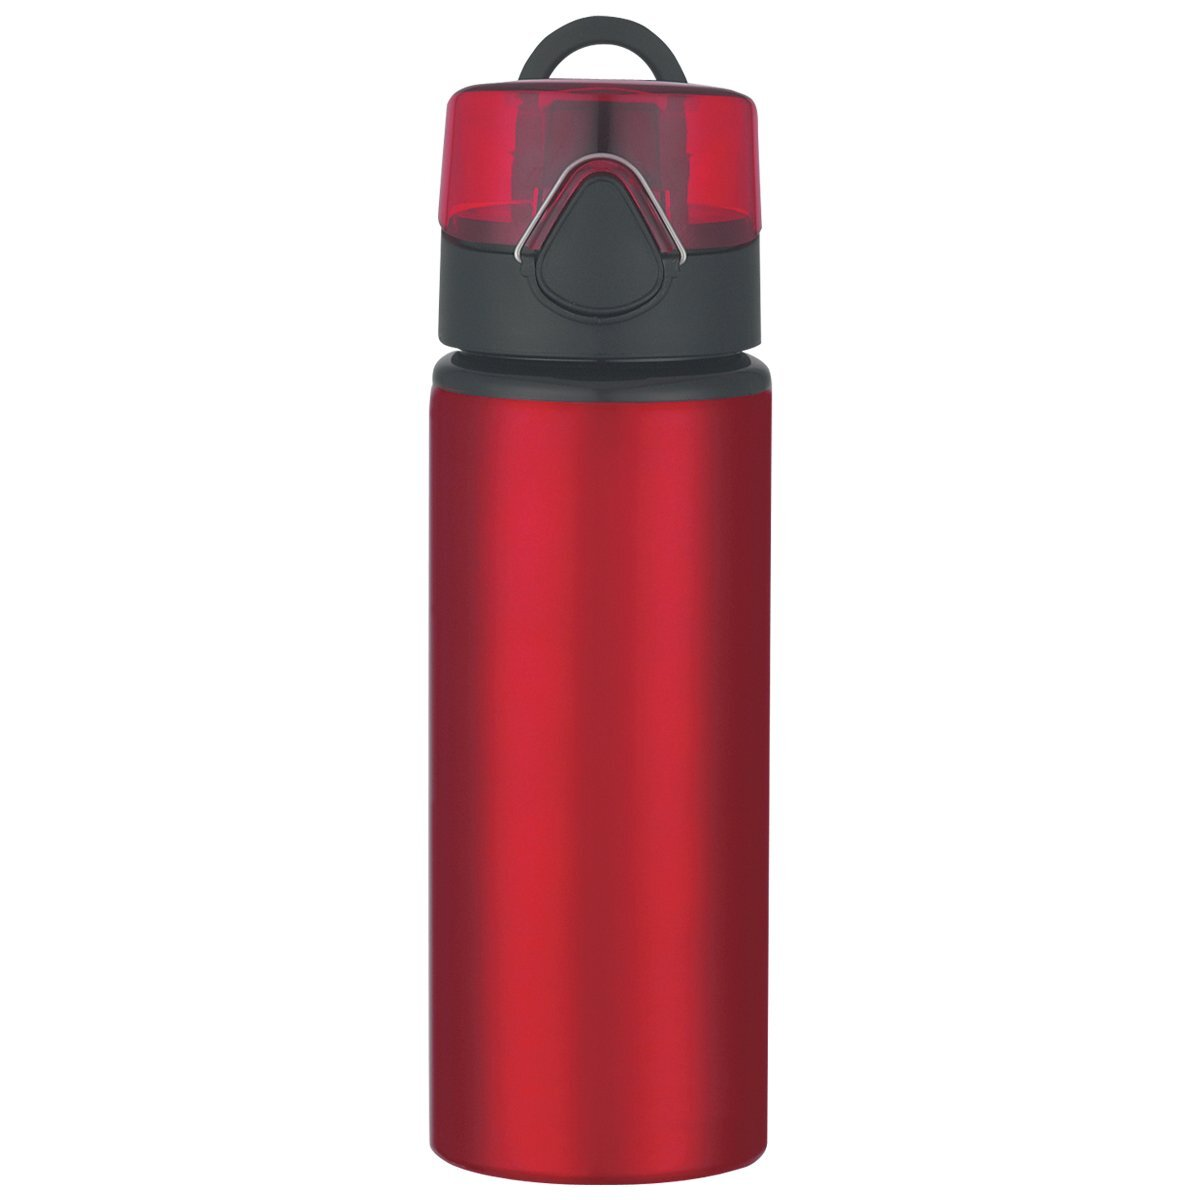 Aluminum Sports Bottle With Pop-Up Lid, 25oz.